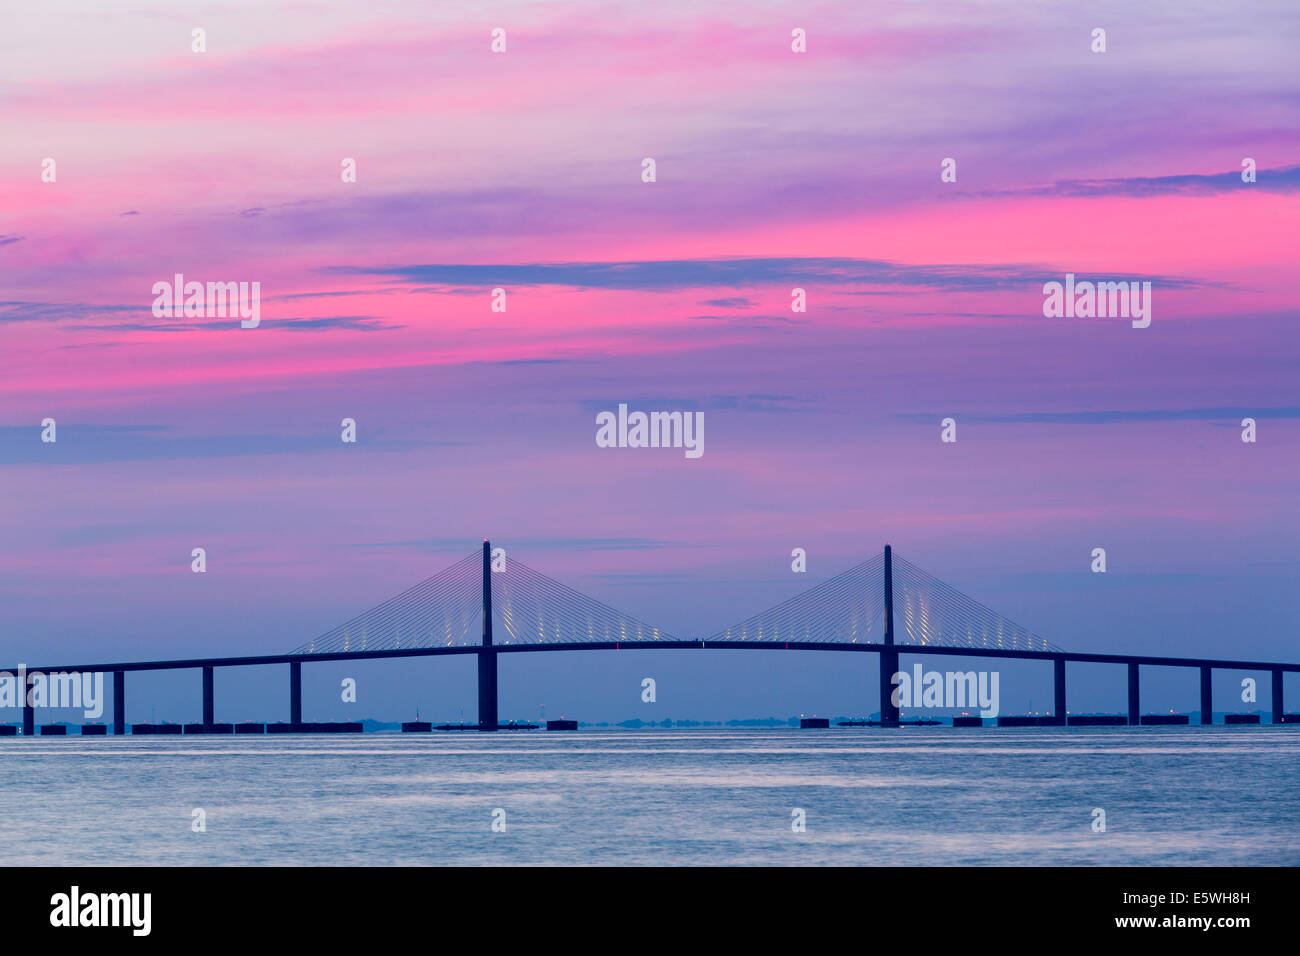 Le lever du soleil sur le Sunshine Skyway Bridge de St Petersburg, Floride, USA dans la baie de Tampa. Photo Stock